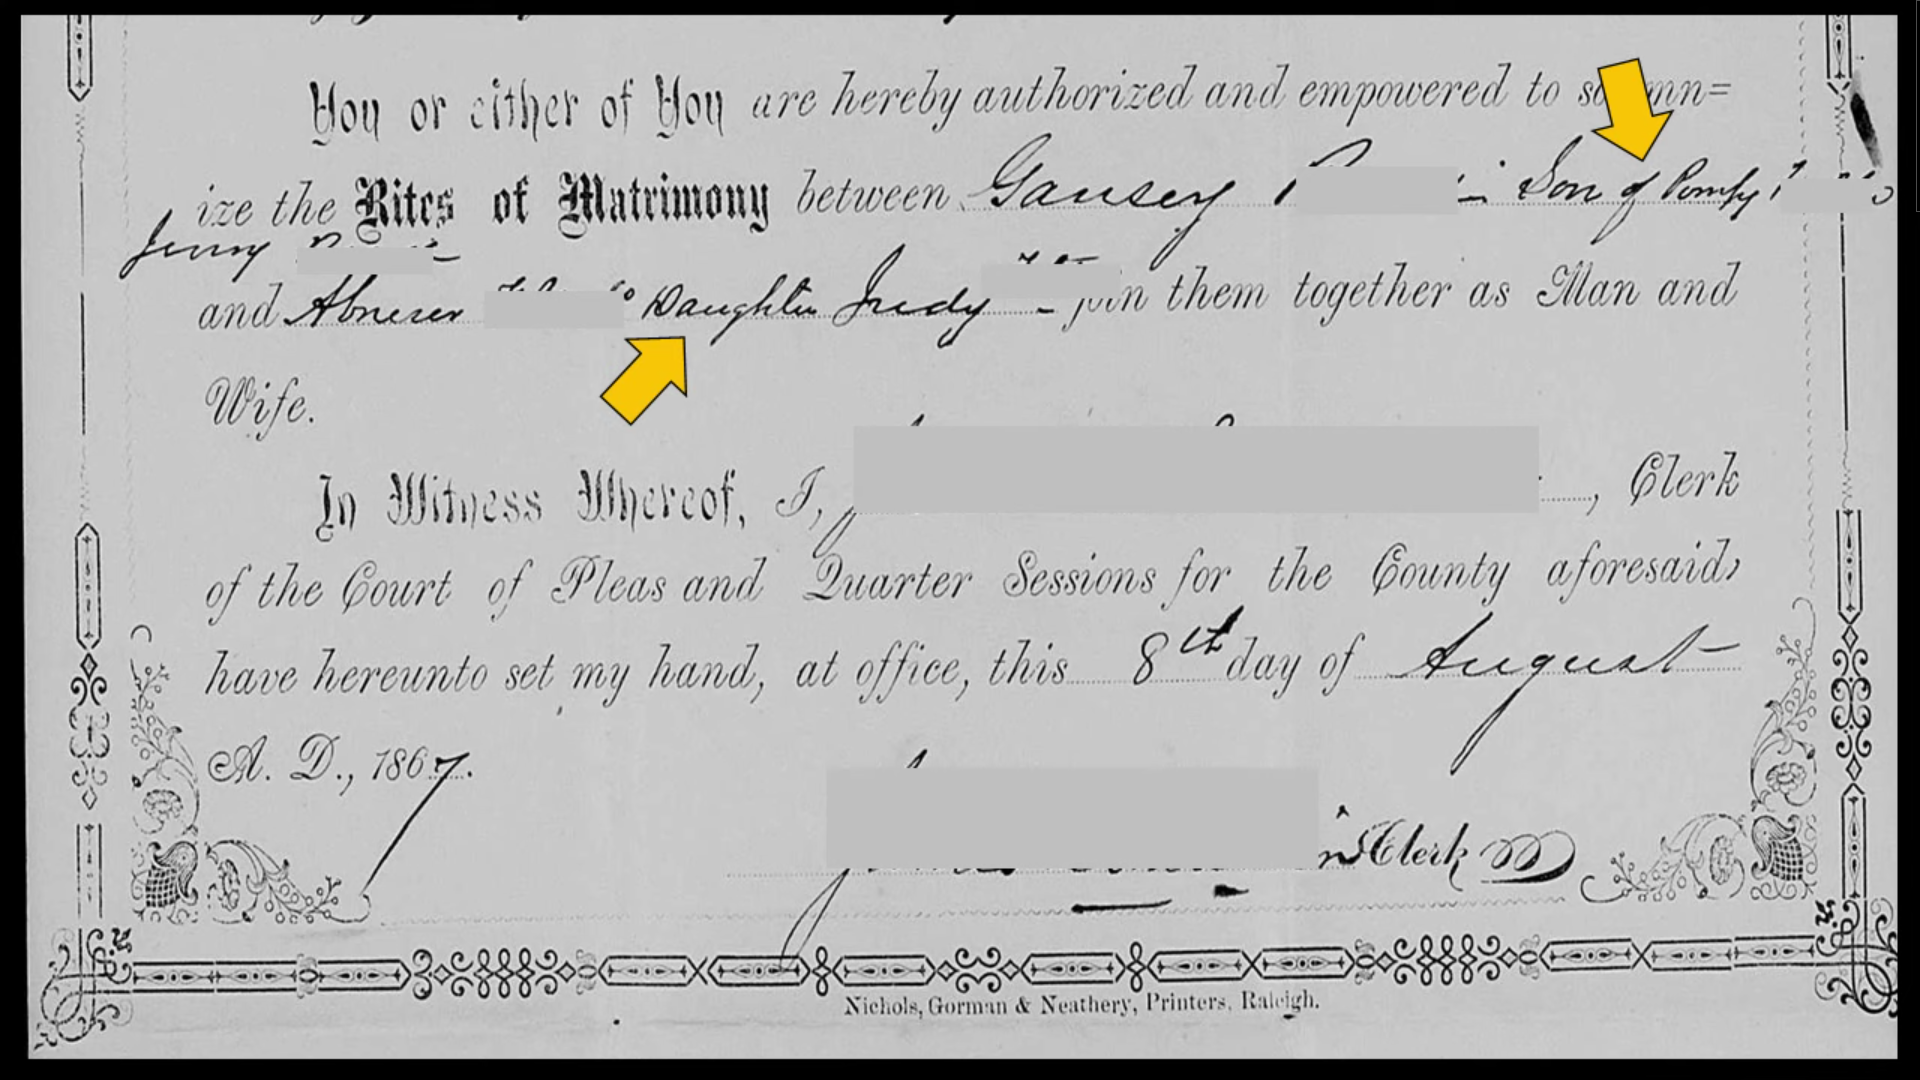 Guansey and Abby's Marriage Certificate